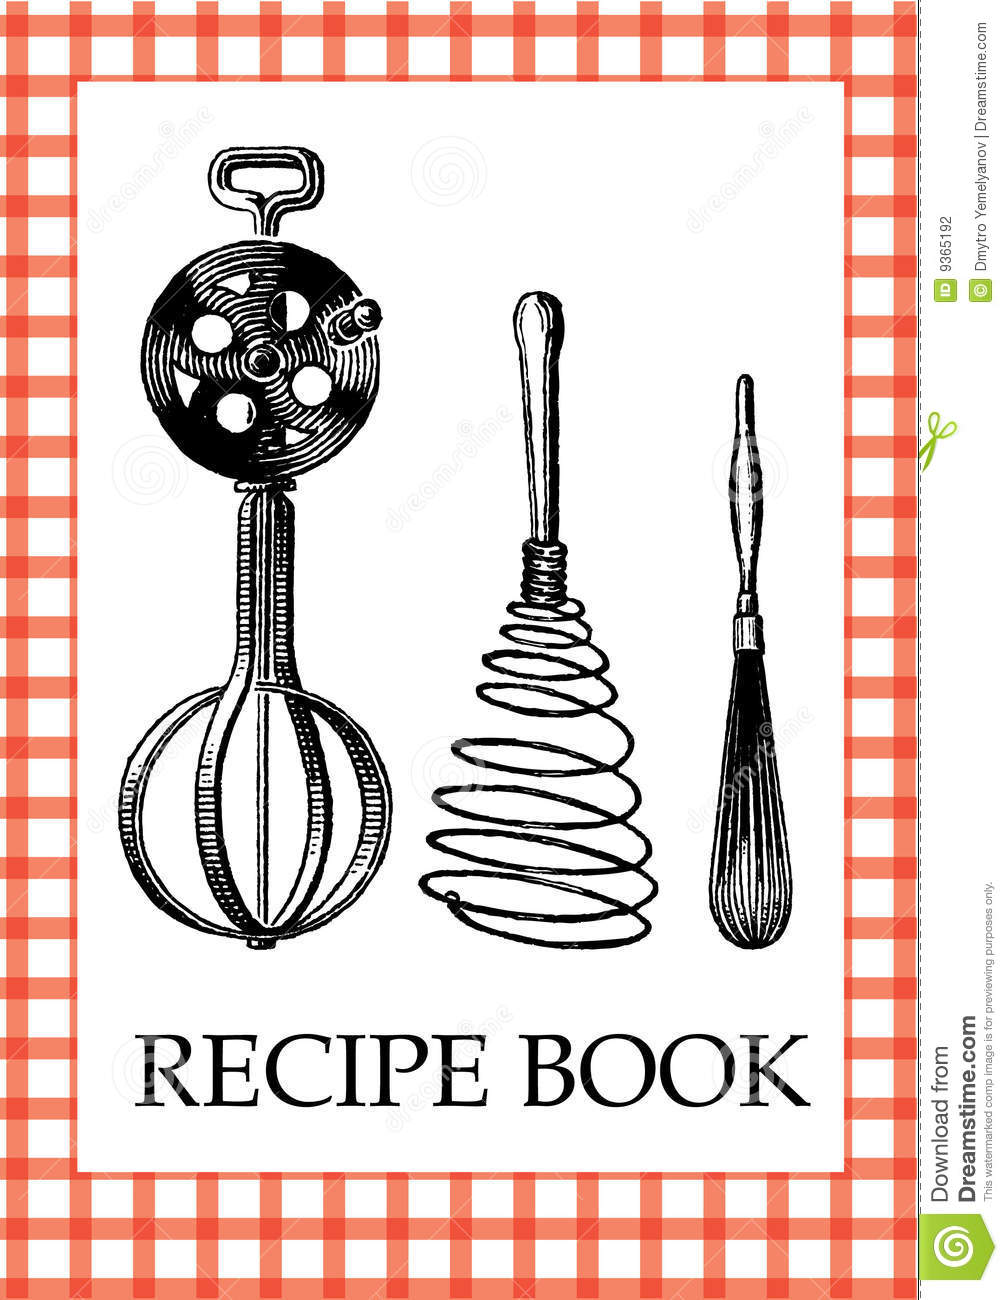 Cookbook Covers Free Templates : Recipe book stock vector illustration of accessory